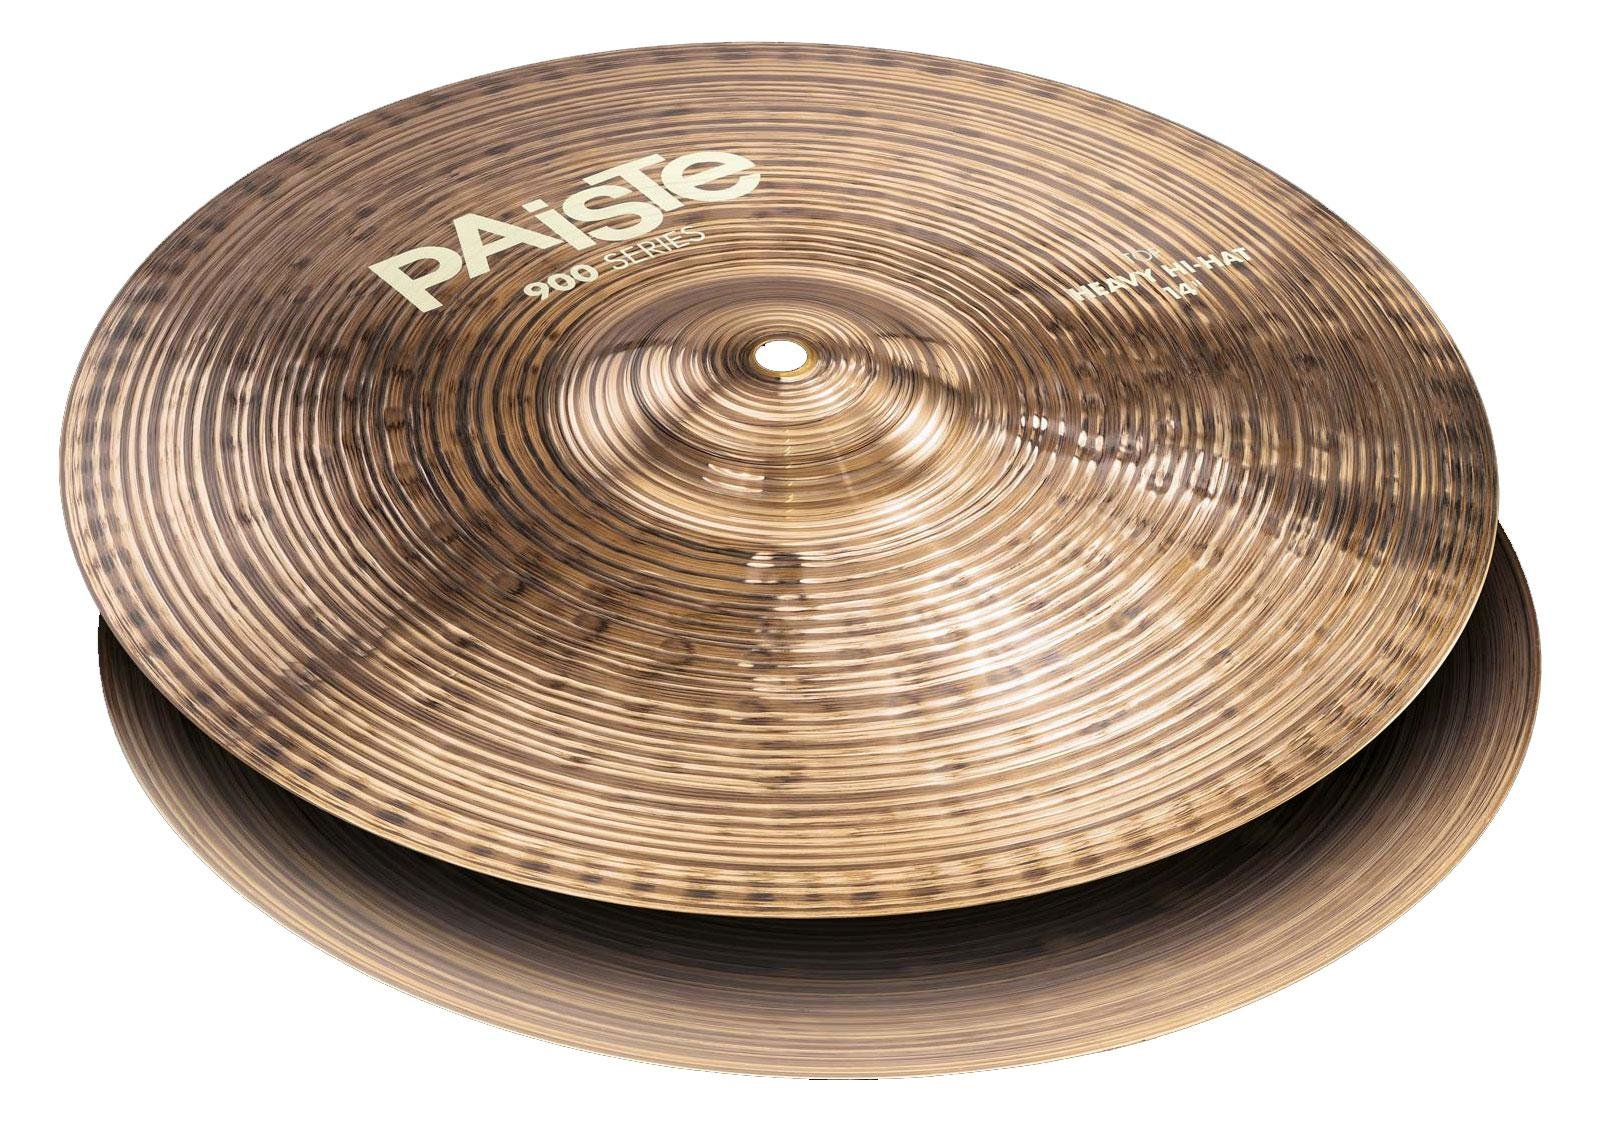 Paiste 14 Inches 900 Series Heavy Hi-Hat Cymbals by Paiste